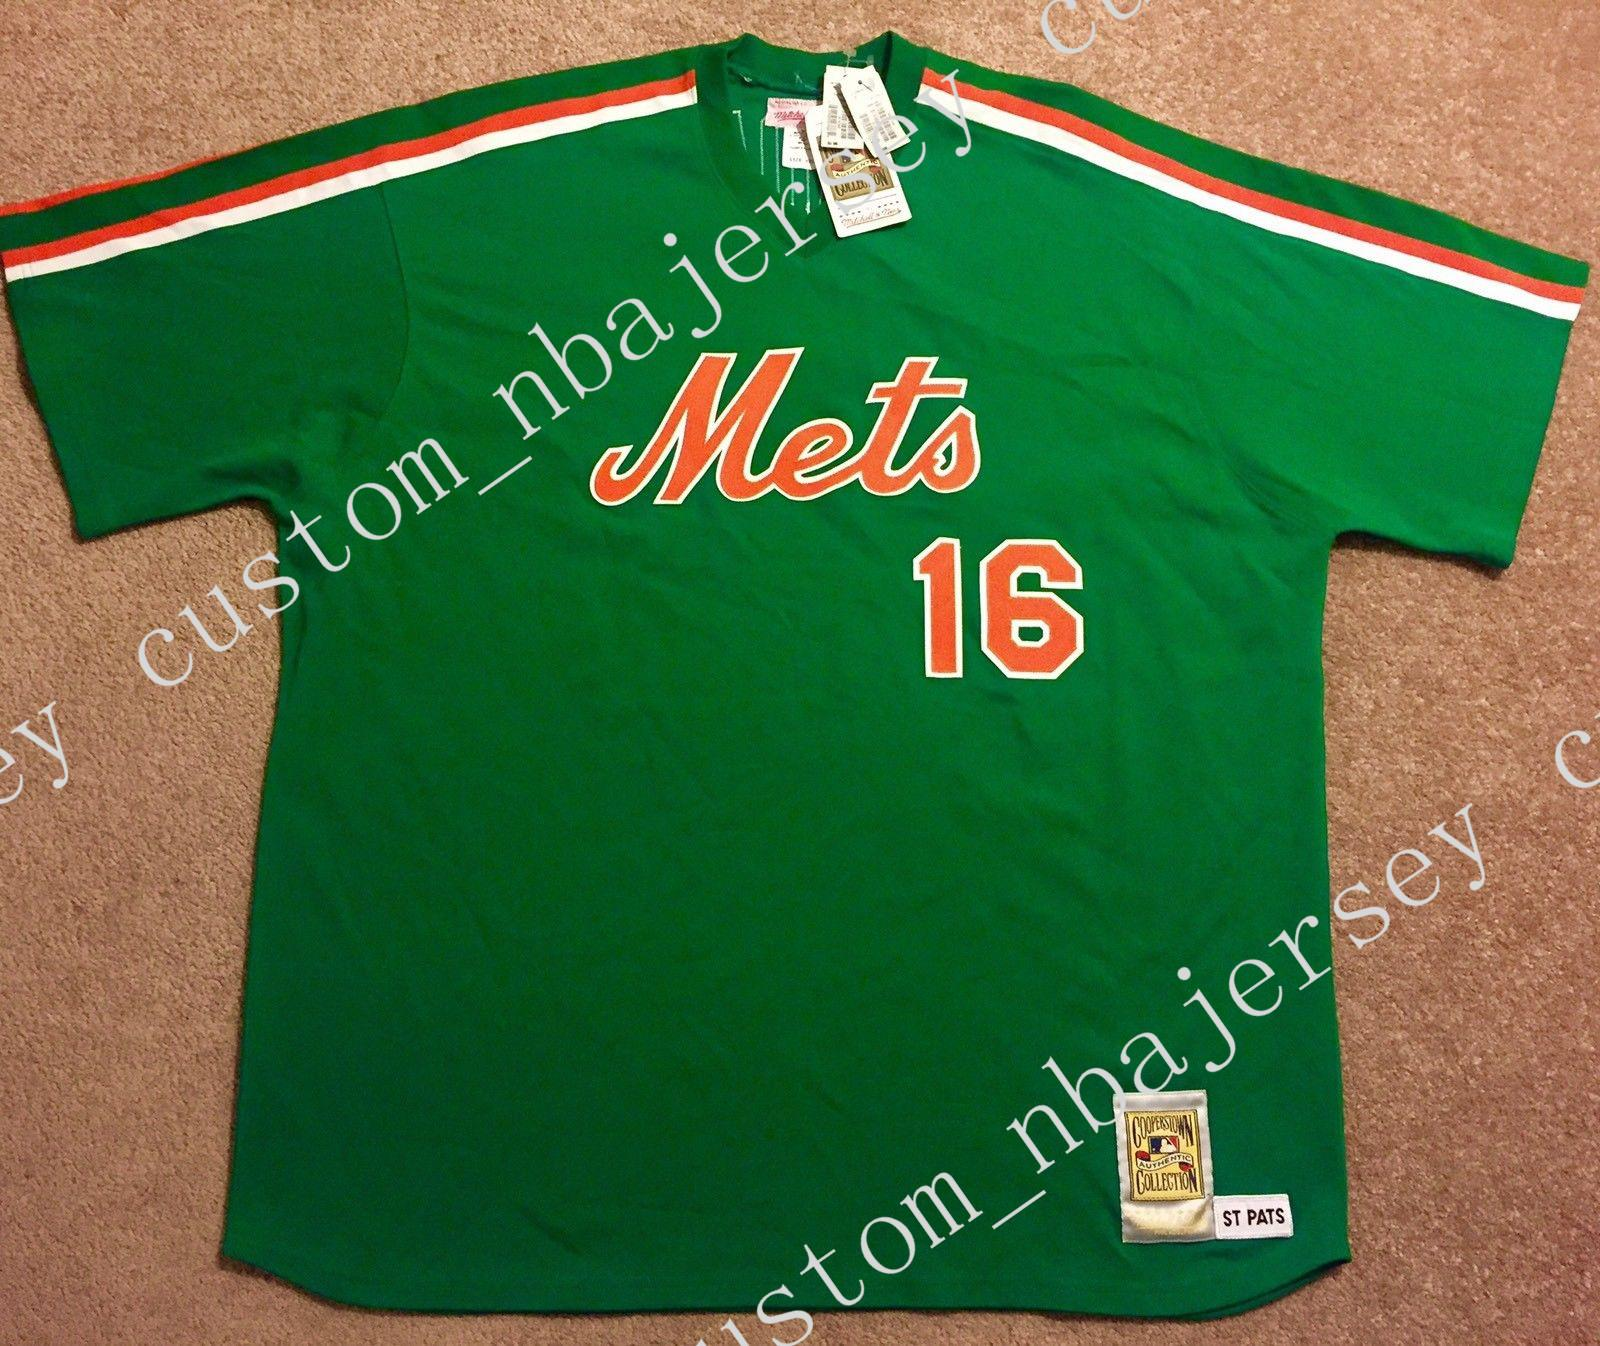 new arrivals 52b74 2861e cheap custom NEW DWIGHT GOODEN 1985 ST.PATS DAY JERSEY Stitched Customize  any number name MEN WOMEN YOUTH XS-5XL